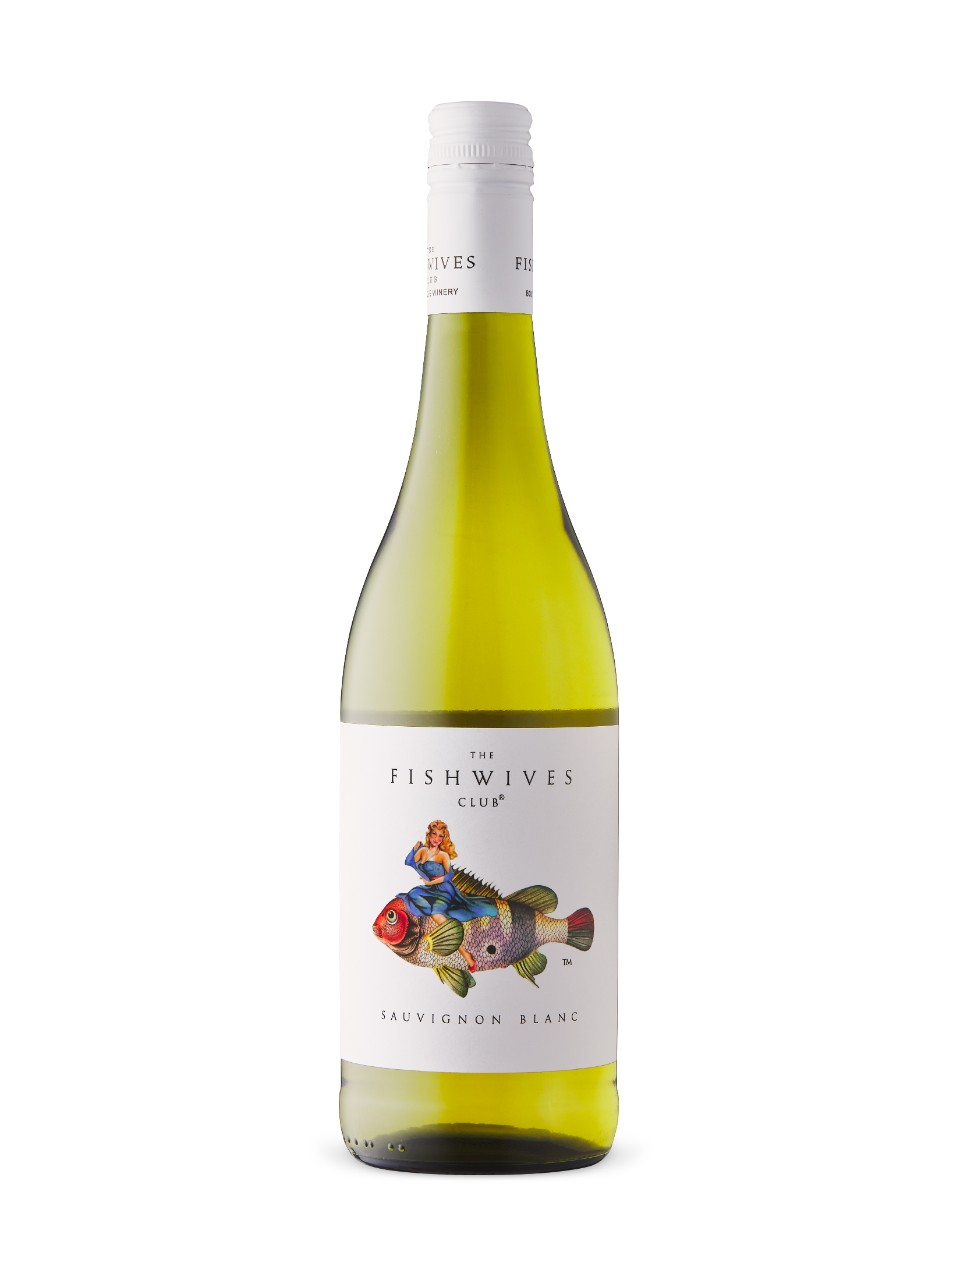 The Fishwives Club Sauvignon Blanc from LCBO